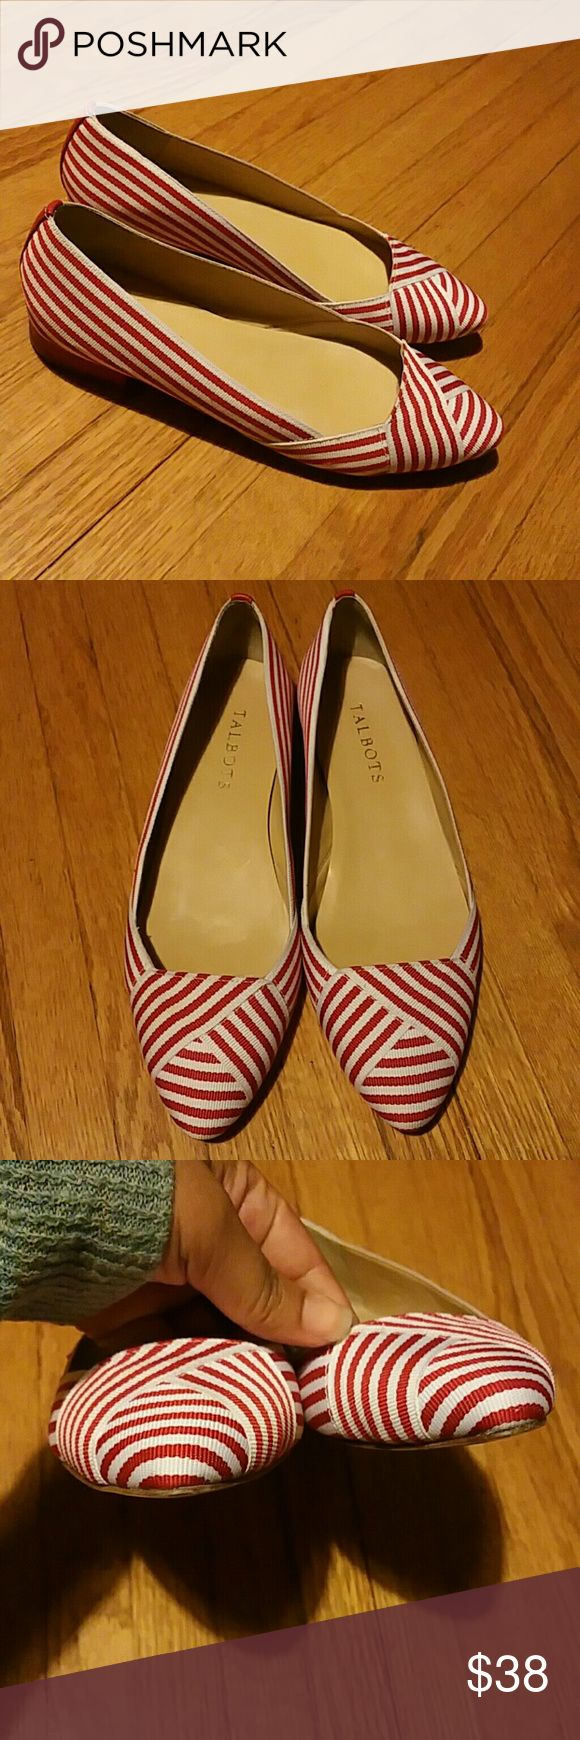 Talbots Red & White Edison Flats Size 7M Striped flats in great used condition with minimal signs of wear to the soles. No dirt or stains on uppers.   NO TRADES.  NO PAYPAL. Talbots Shoes Flats & Loafers